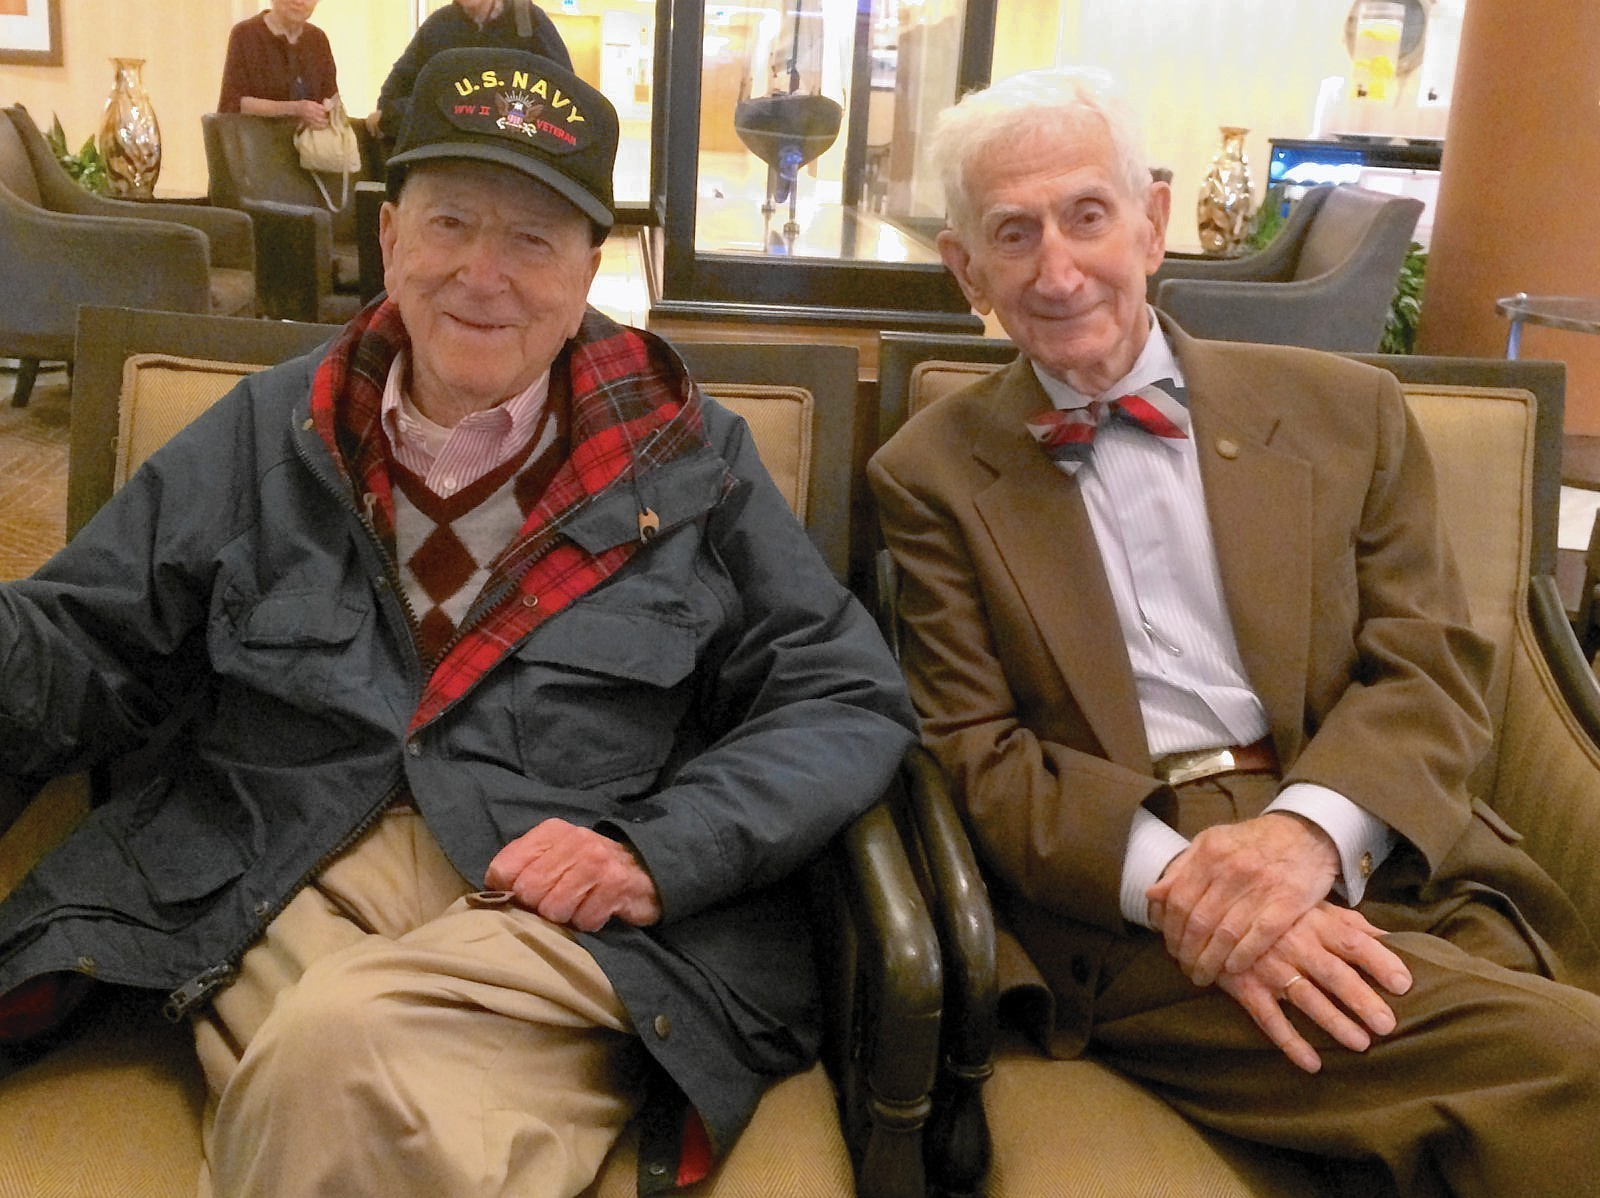 25b487eed8a Final reunion  Two sailors from Naval Academy Class of 1940 to meet for one  last time - Capital Gazette